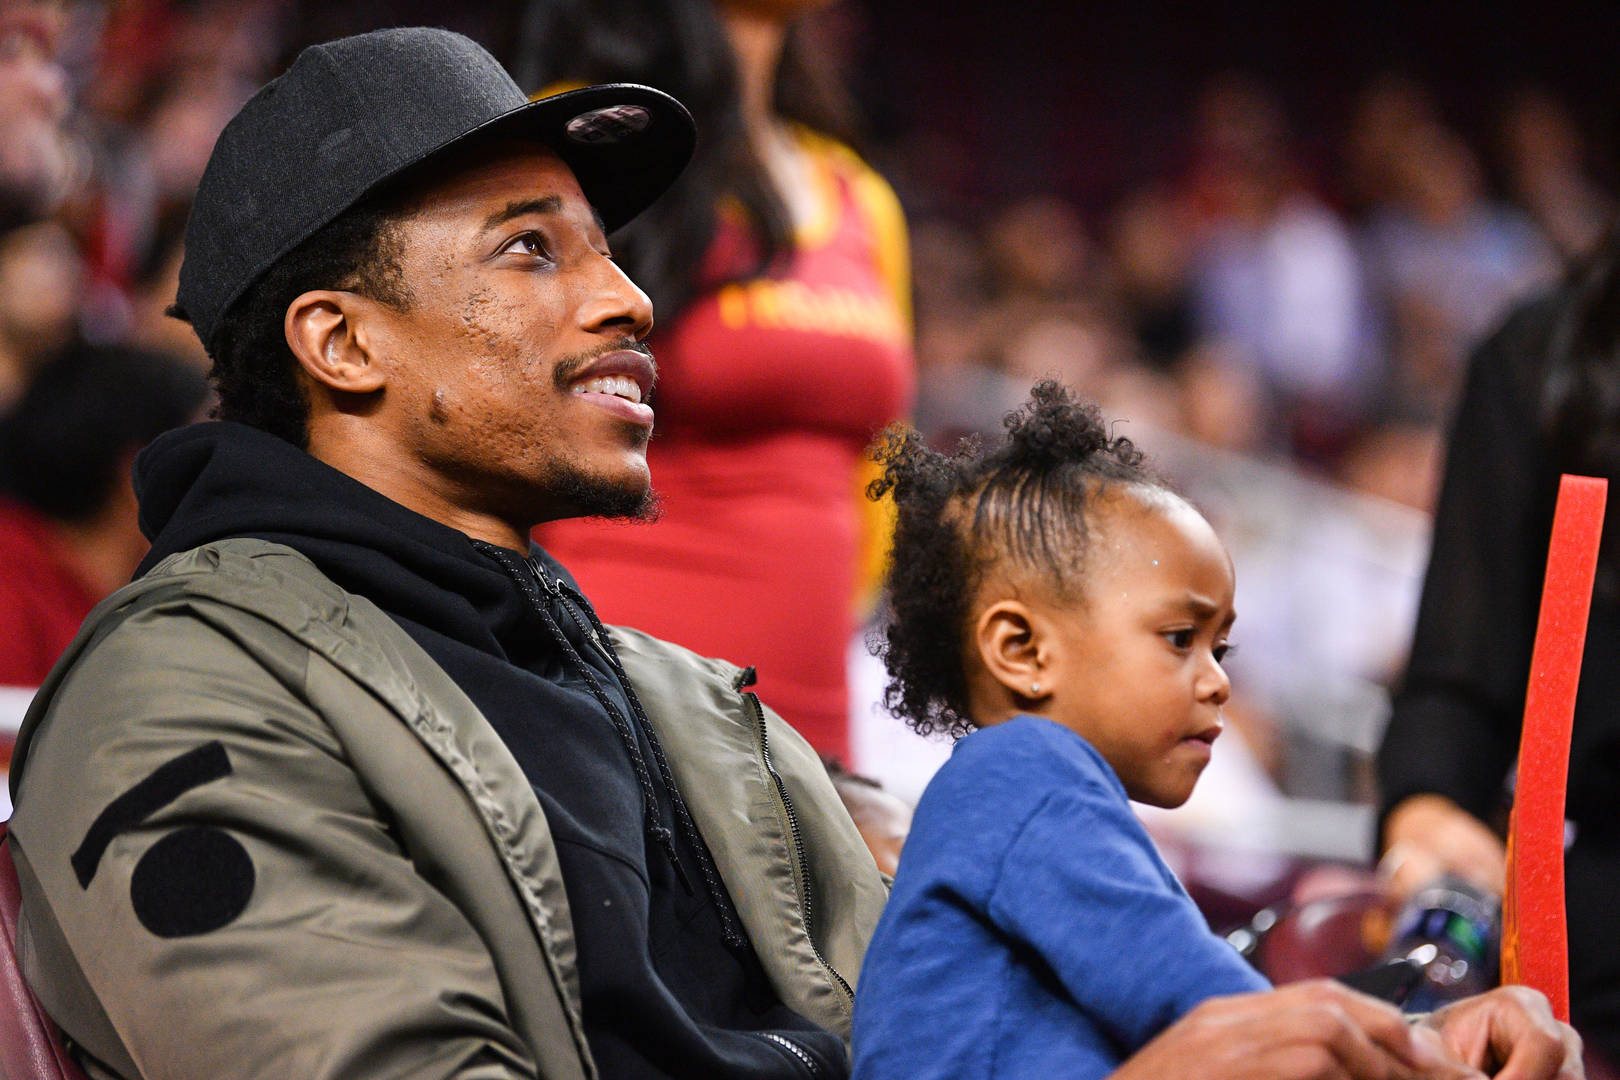 DeMar DeRozan says 'everything is good' after home intruder confrontation